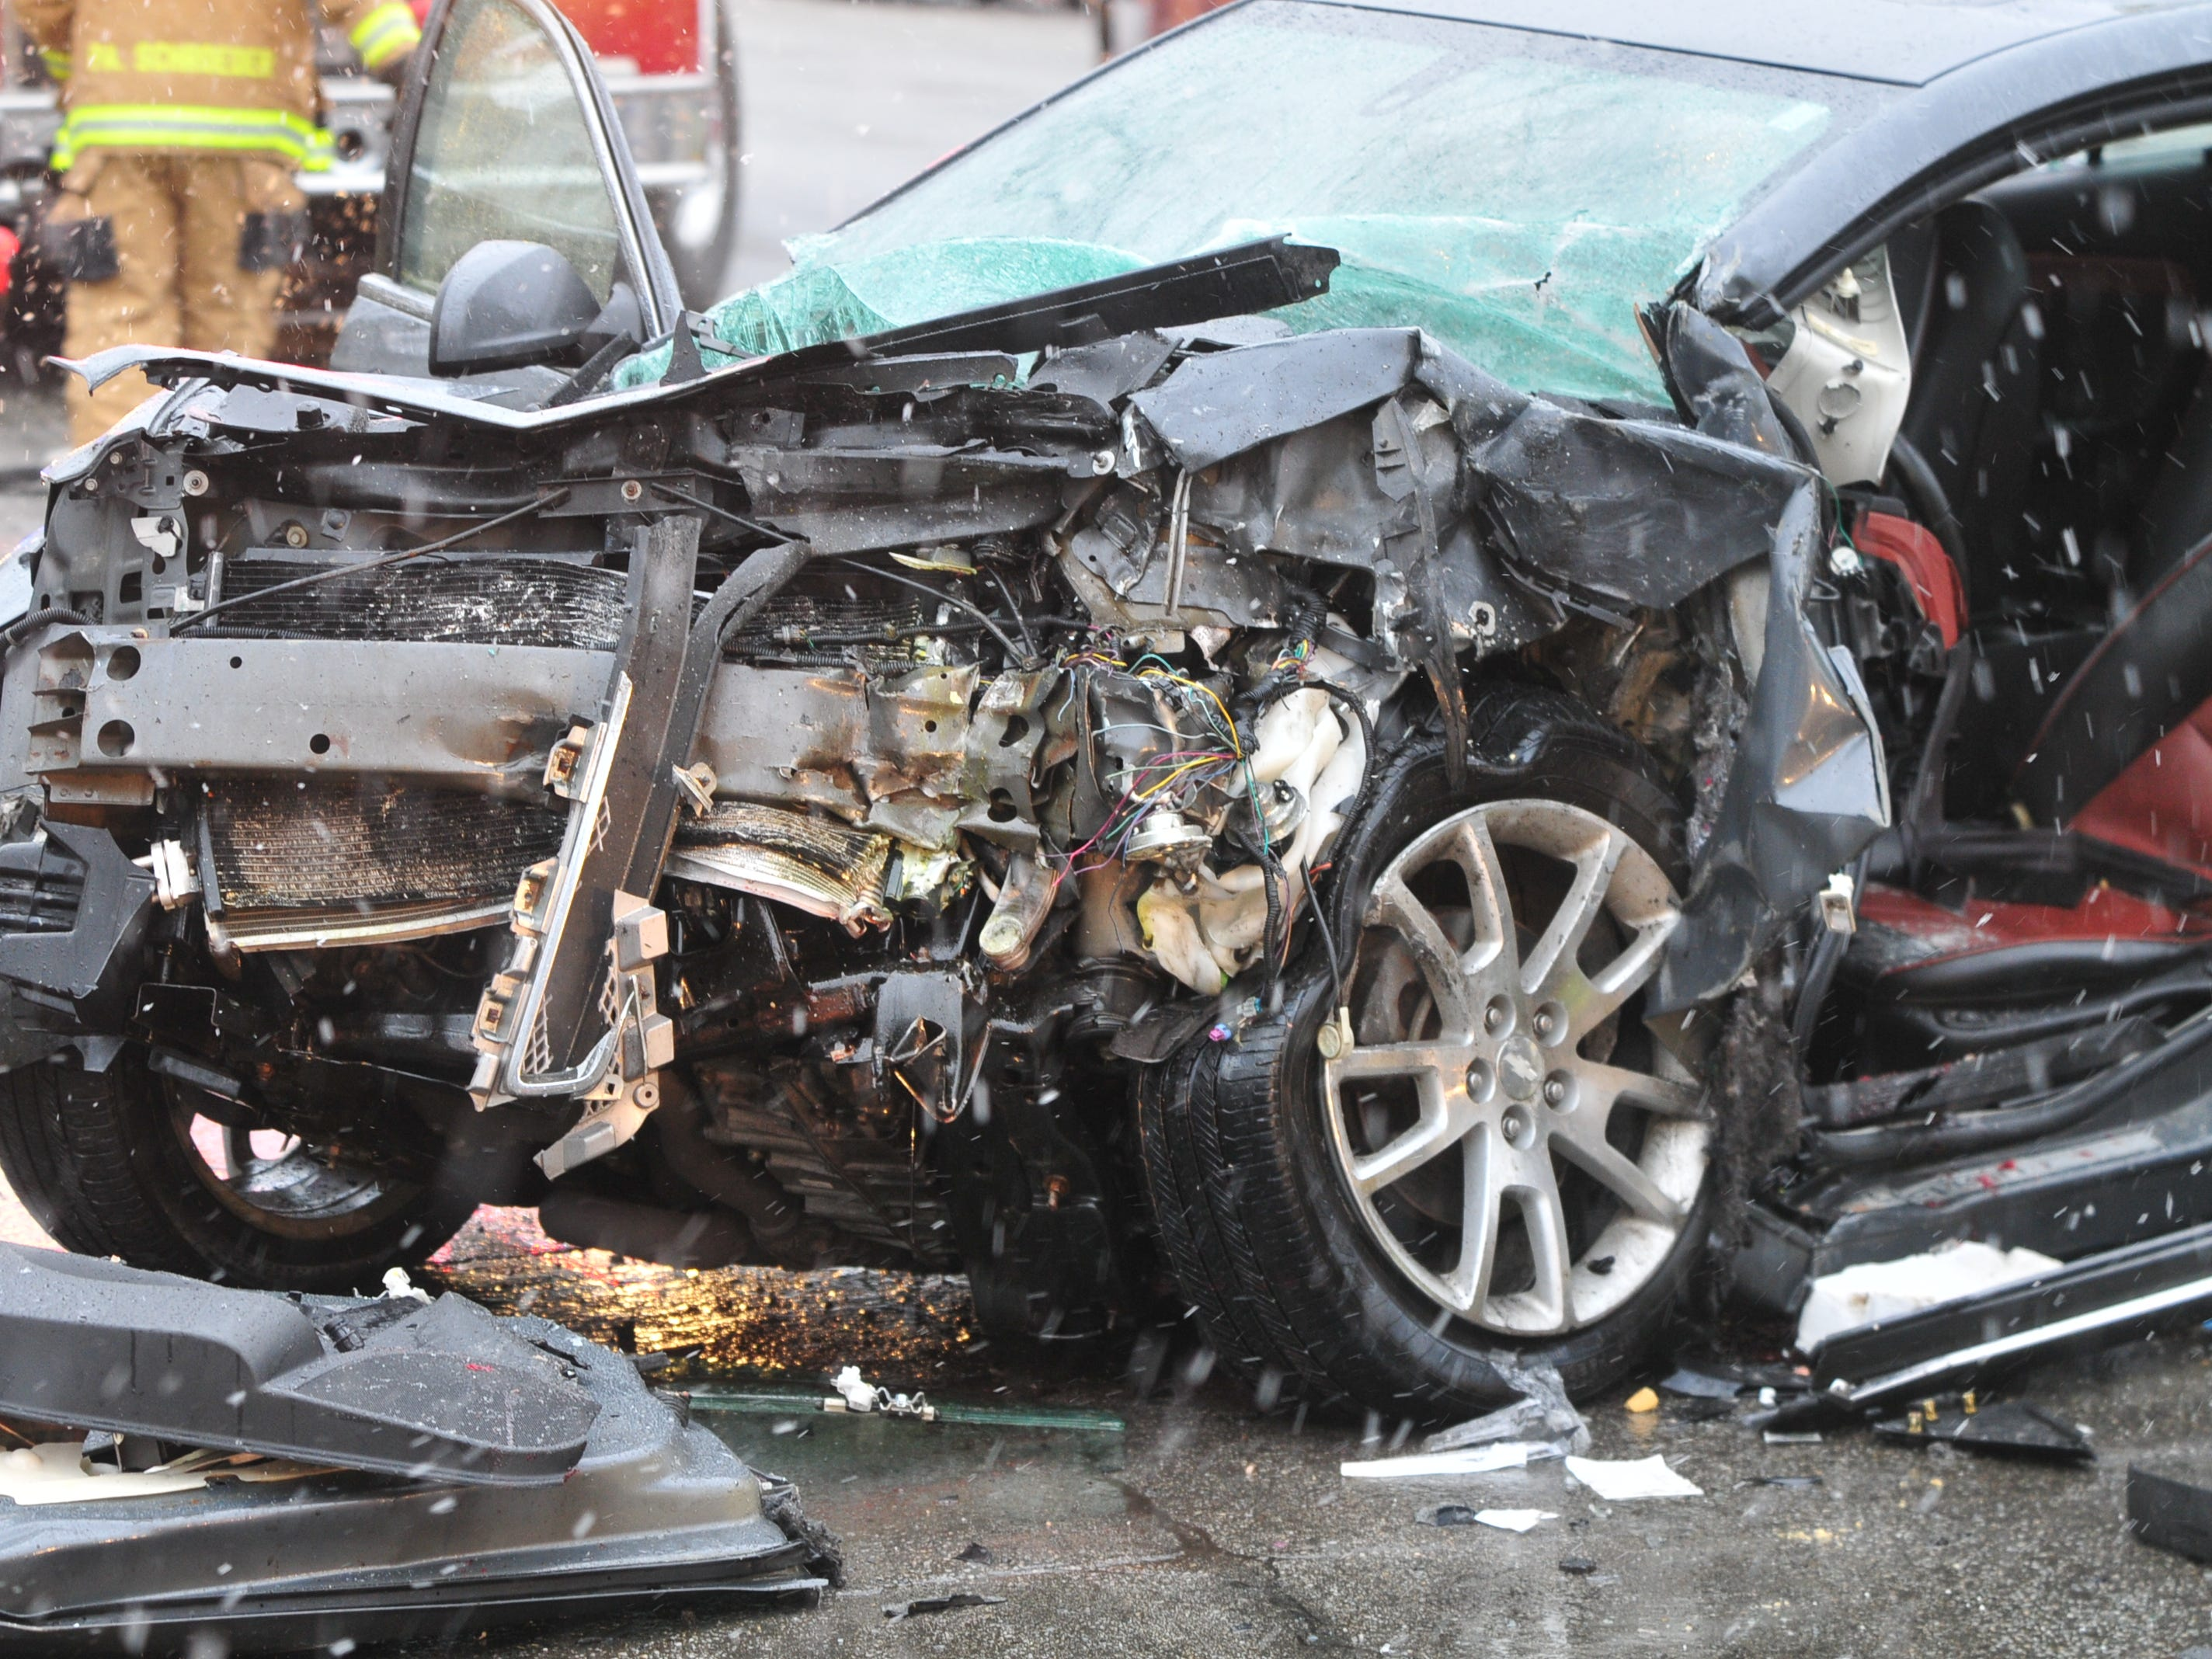 A Chevrolet Malibu was severely damaged Thursday during an accident on Richmond Avenue.